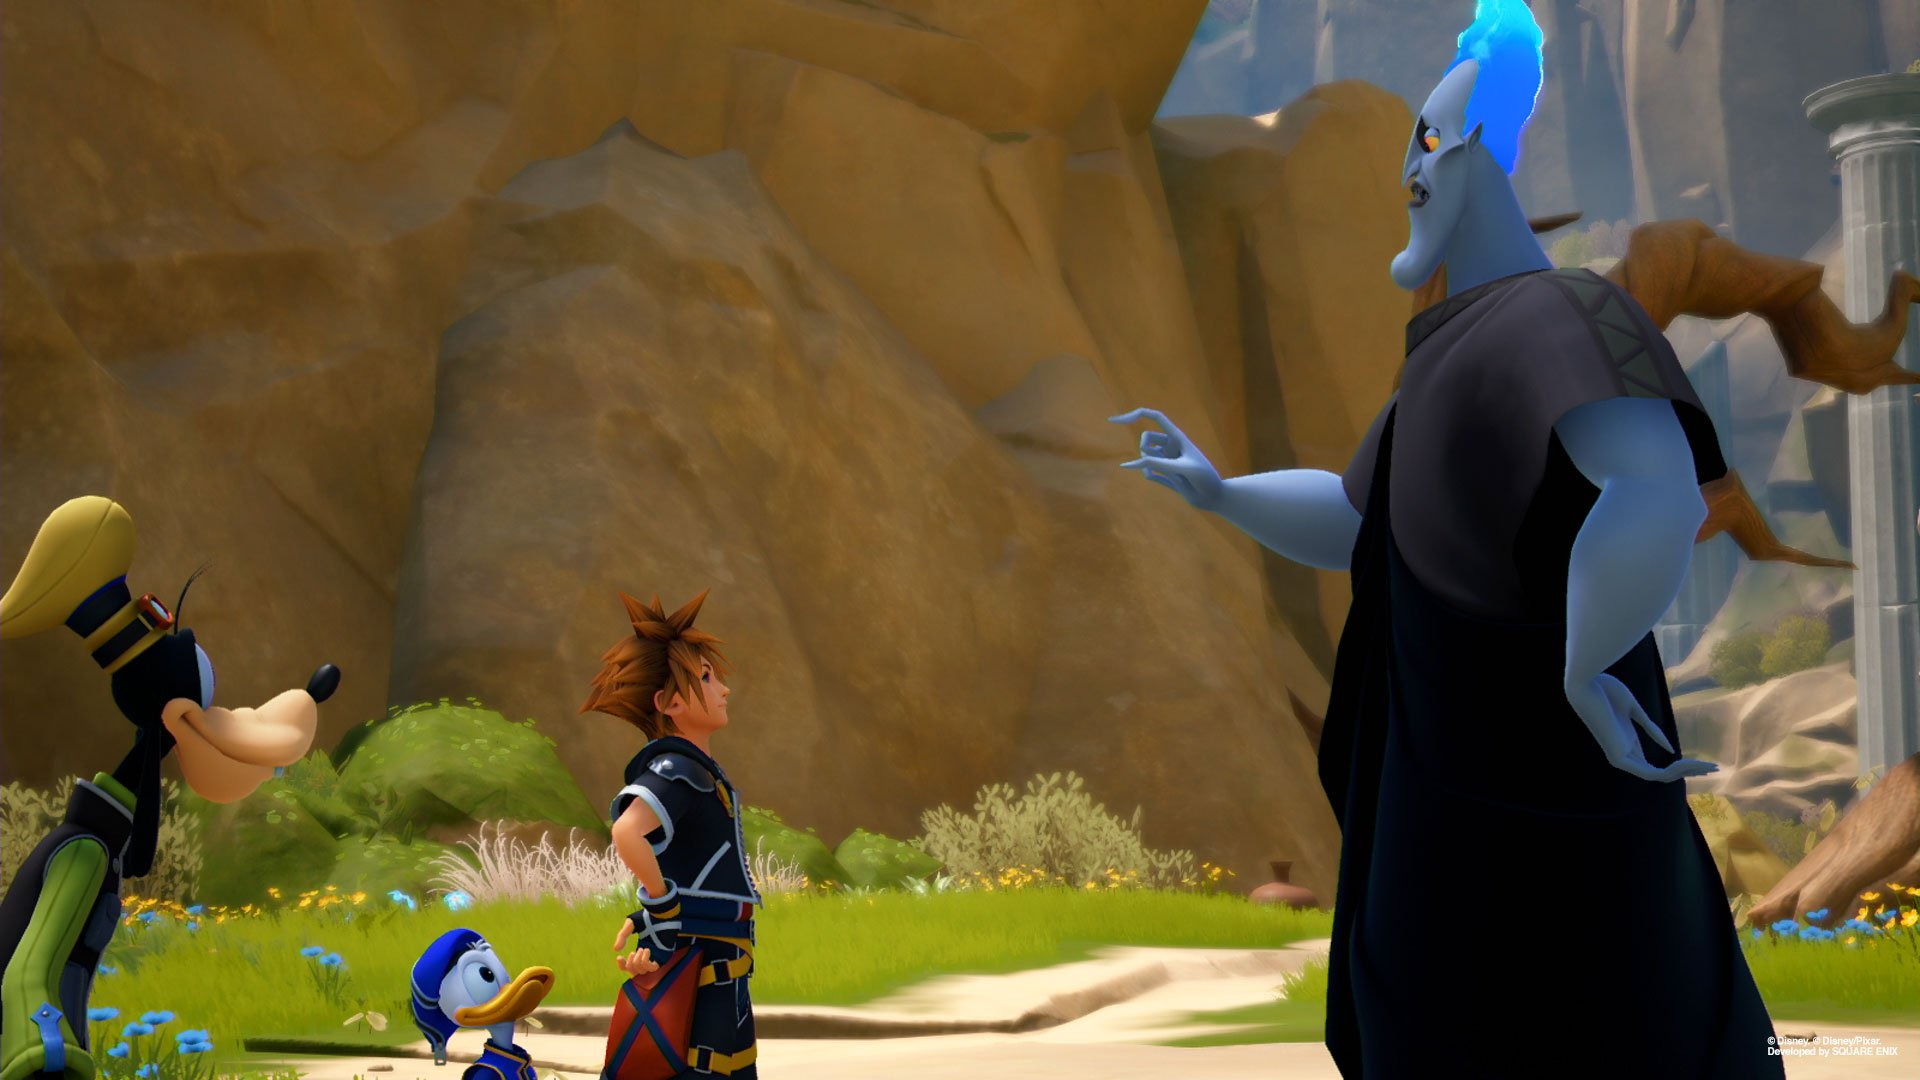 kingdom-hearts-iii-and-re-mind-pc-screenshot-3